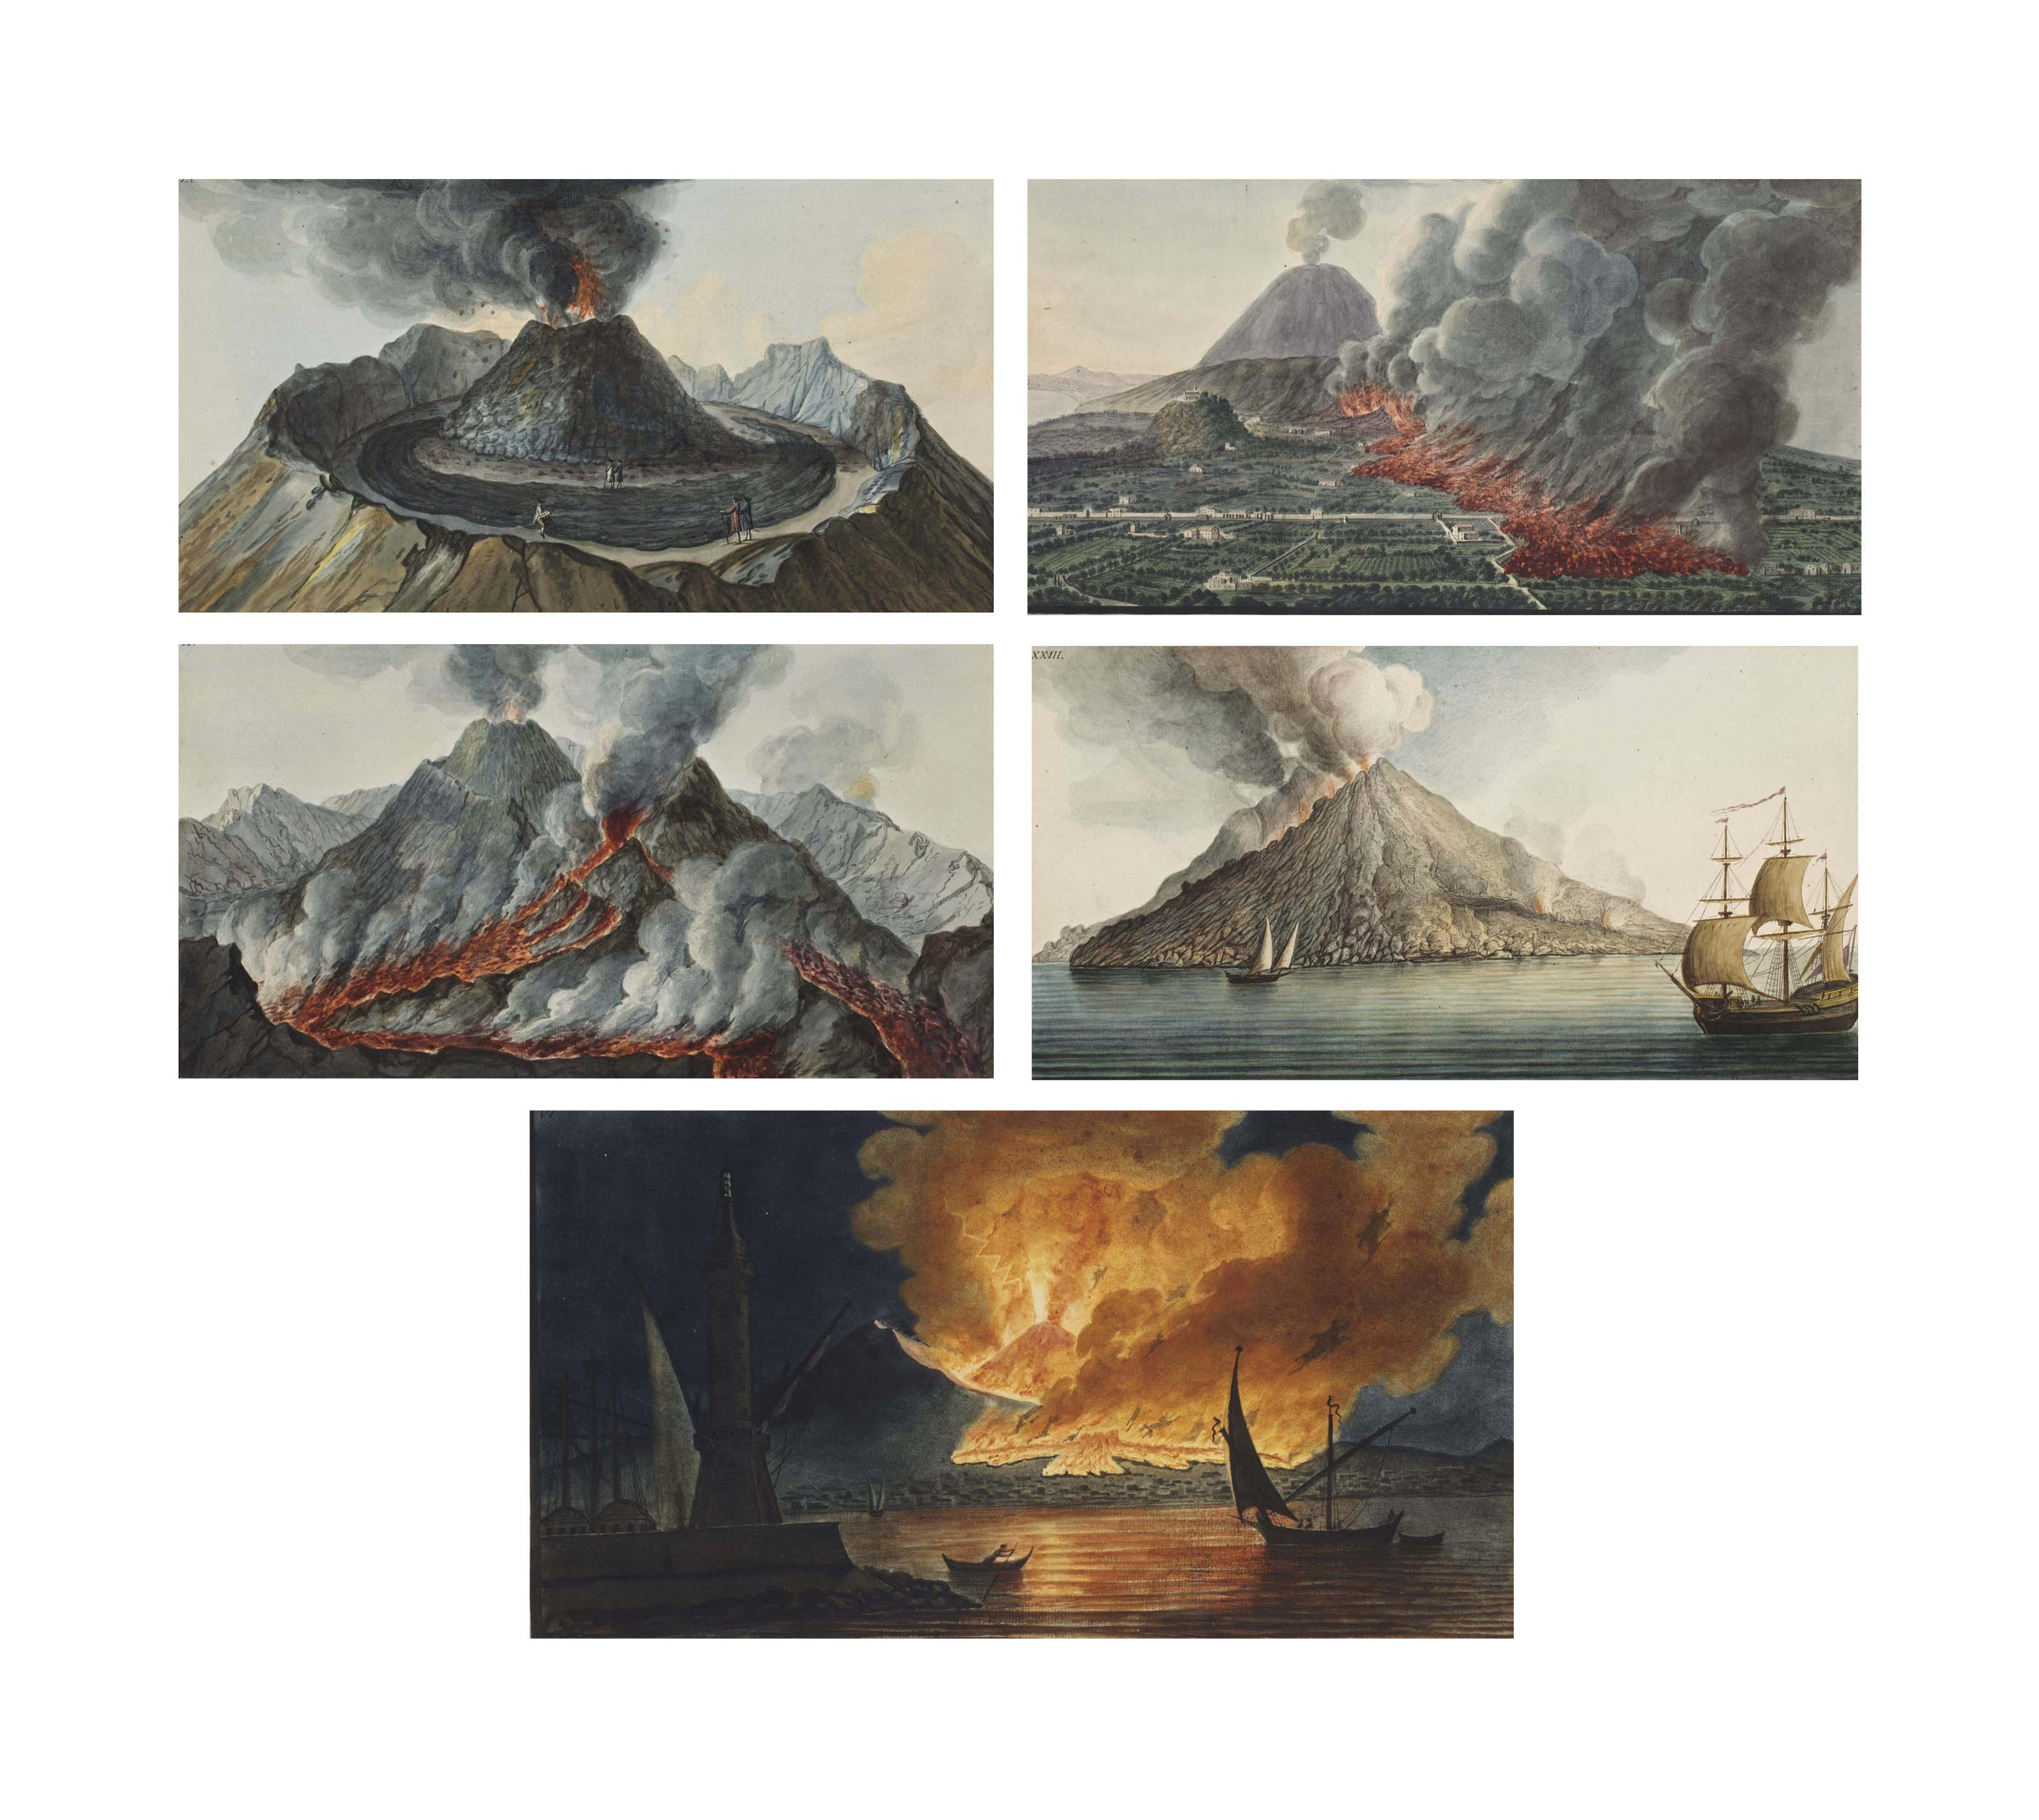 Huit planches aquarellées de volcans en éruption provenant de l'ouvrage 'Campi Phlegraei. Observations on the Volcanoes of the two Sicilies as they have been communicated to the Royal Society of London' par Sir William Hamilton